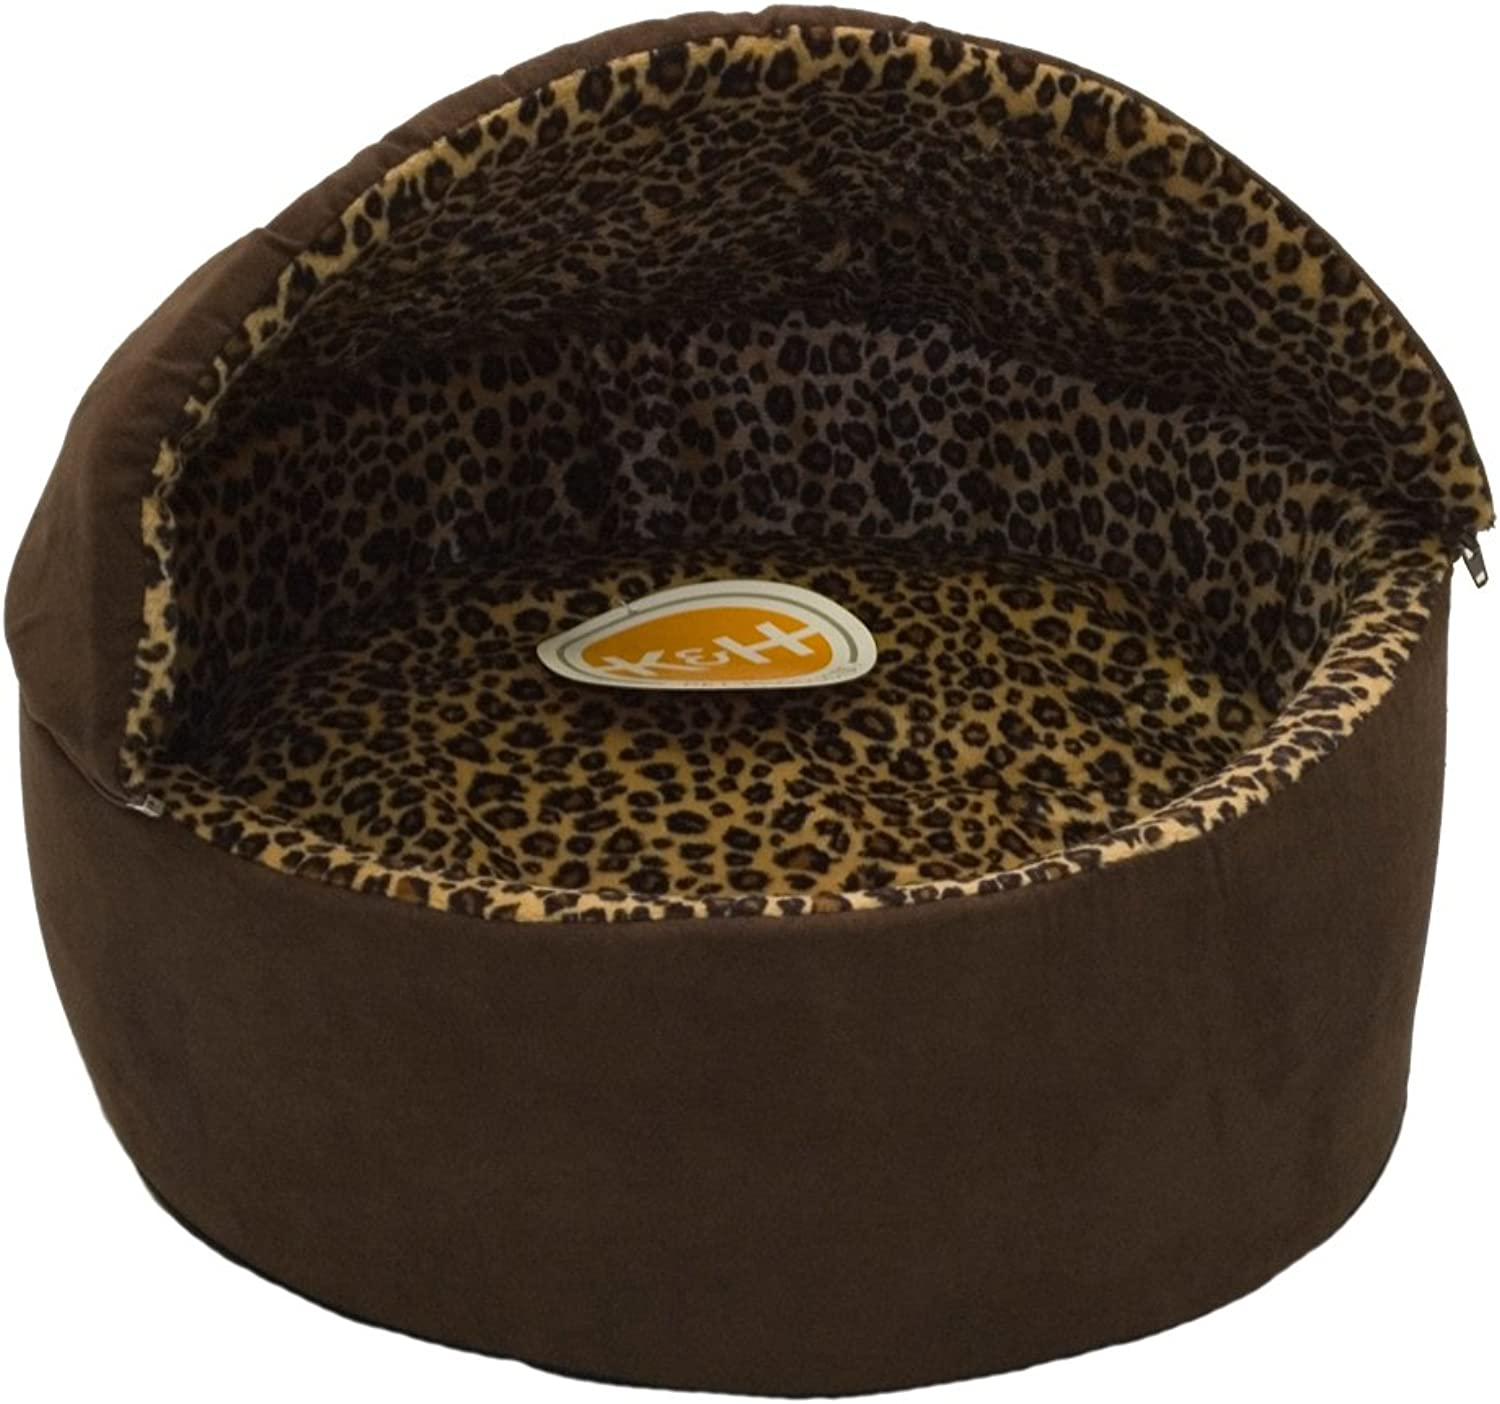 K&H Manufacturing ThermoKitty Deluxe Hooded Cat Bed, Large 20Inch, 4Watts, Mocha Leopard